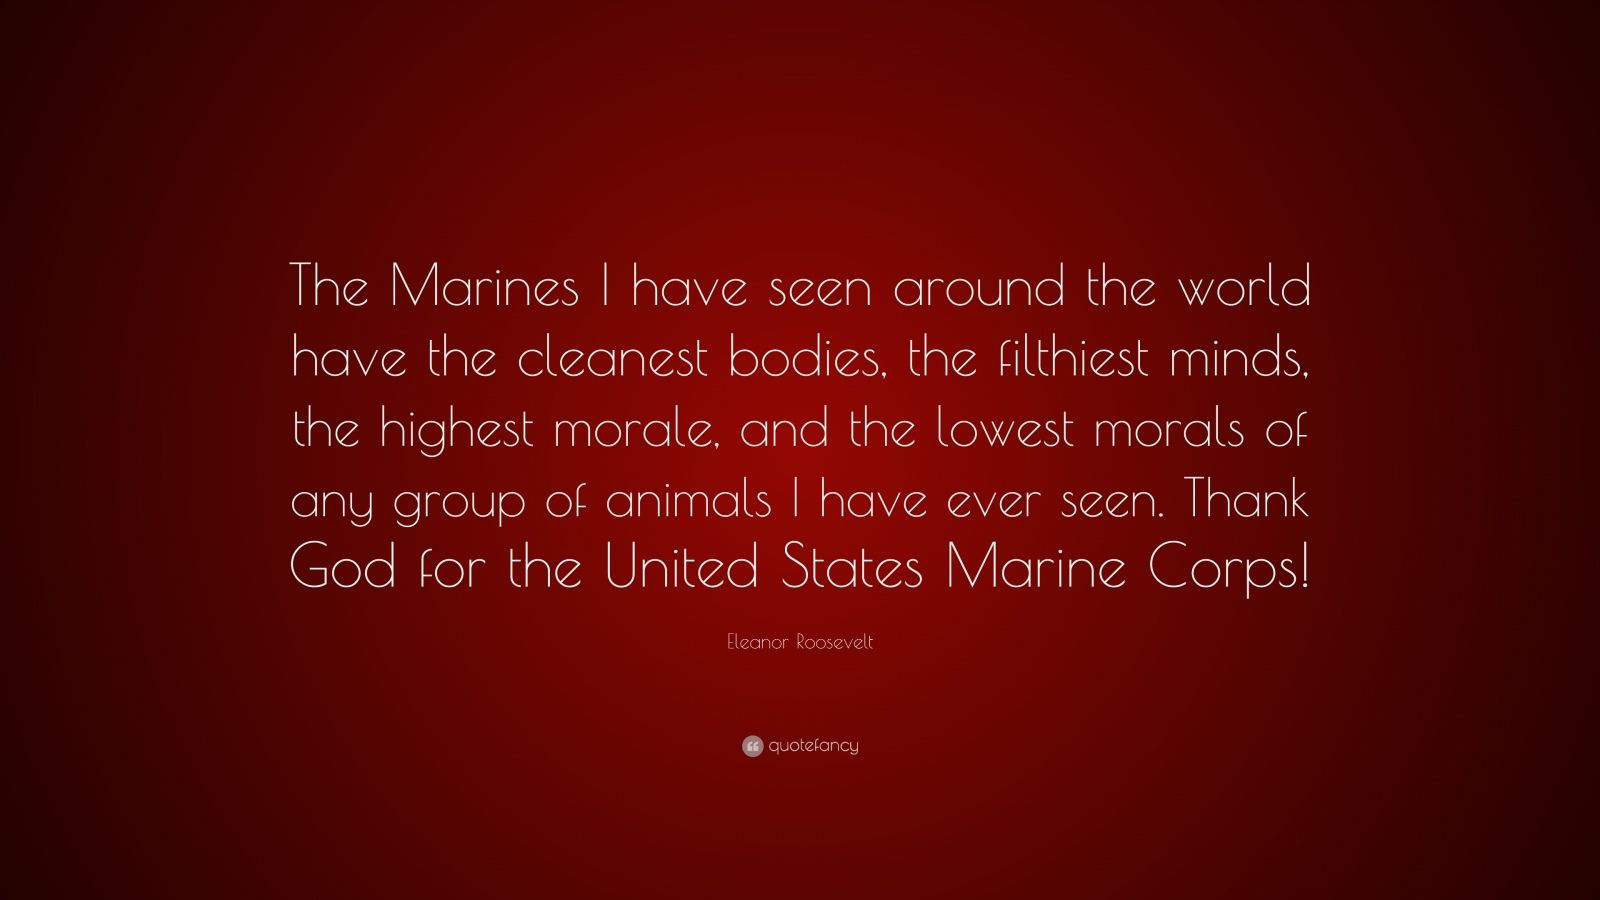 Eleanor Roosevelt Quote About Marines Awesome Eleanor Roosevelt Quotes 100 Wallpapers  Quotefancy